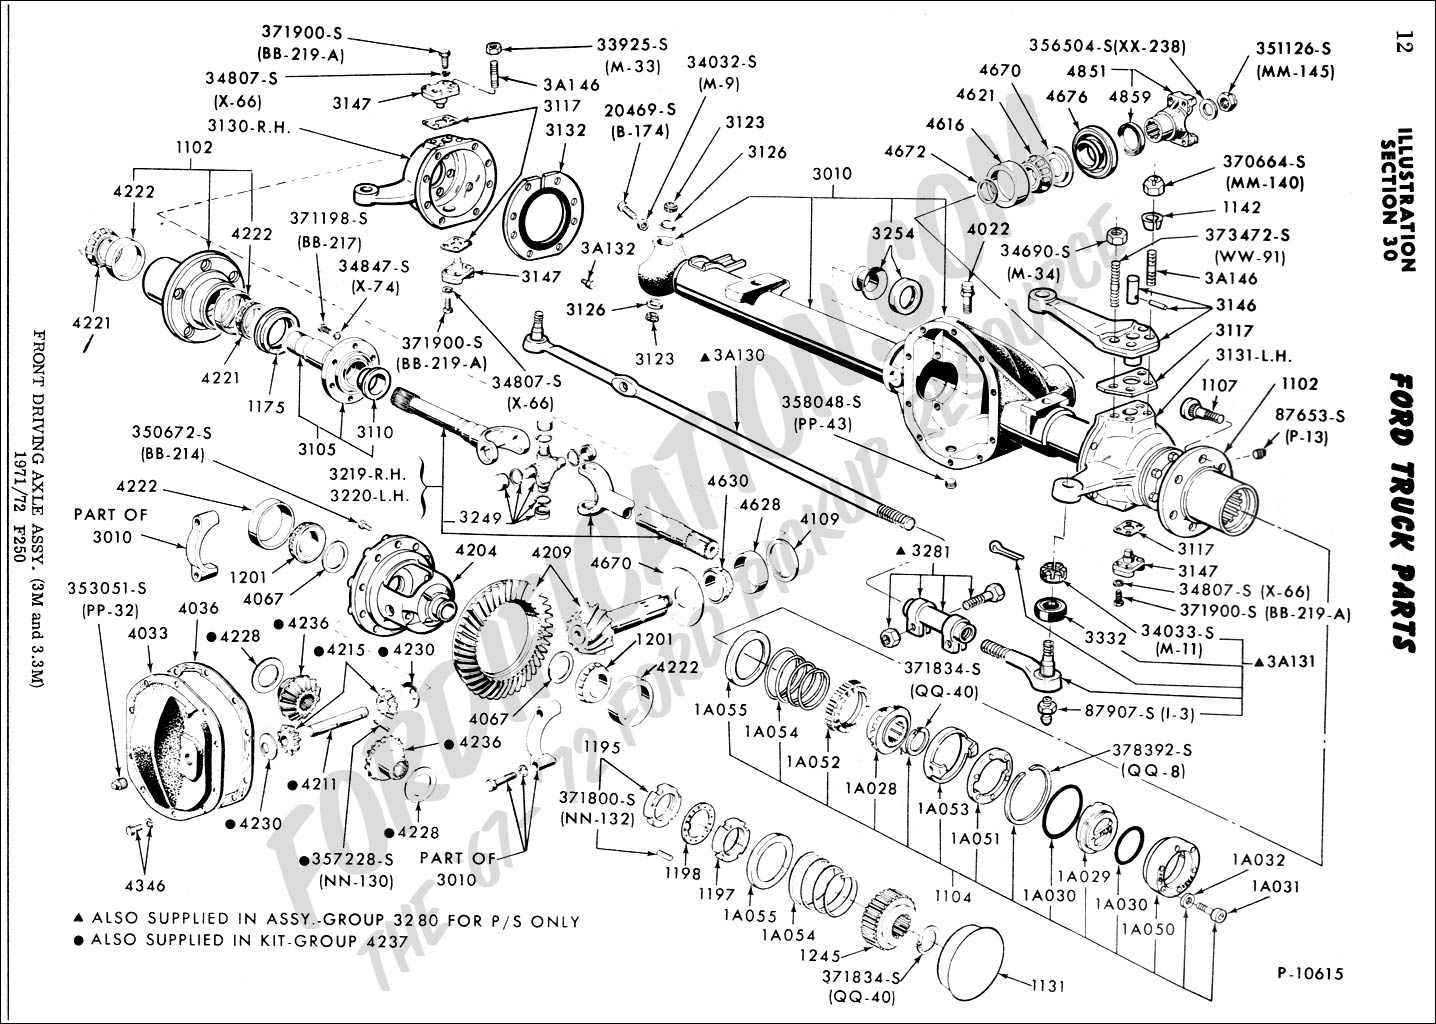 2000 F250 Front Axle Diagram Wiring Diagrams \u2022 99 F250 Super Duty Fuse  Diagram 2000 Ford F 250 Super Duty Fuse Diagram